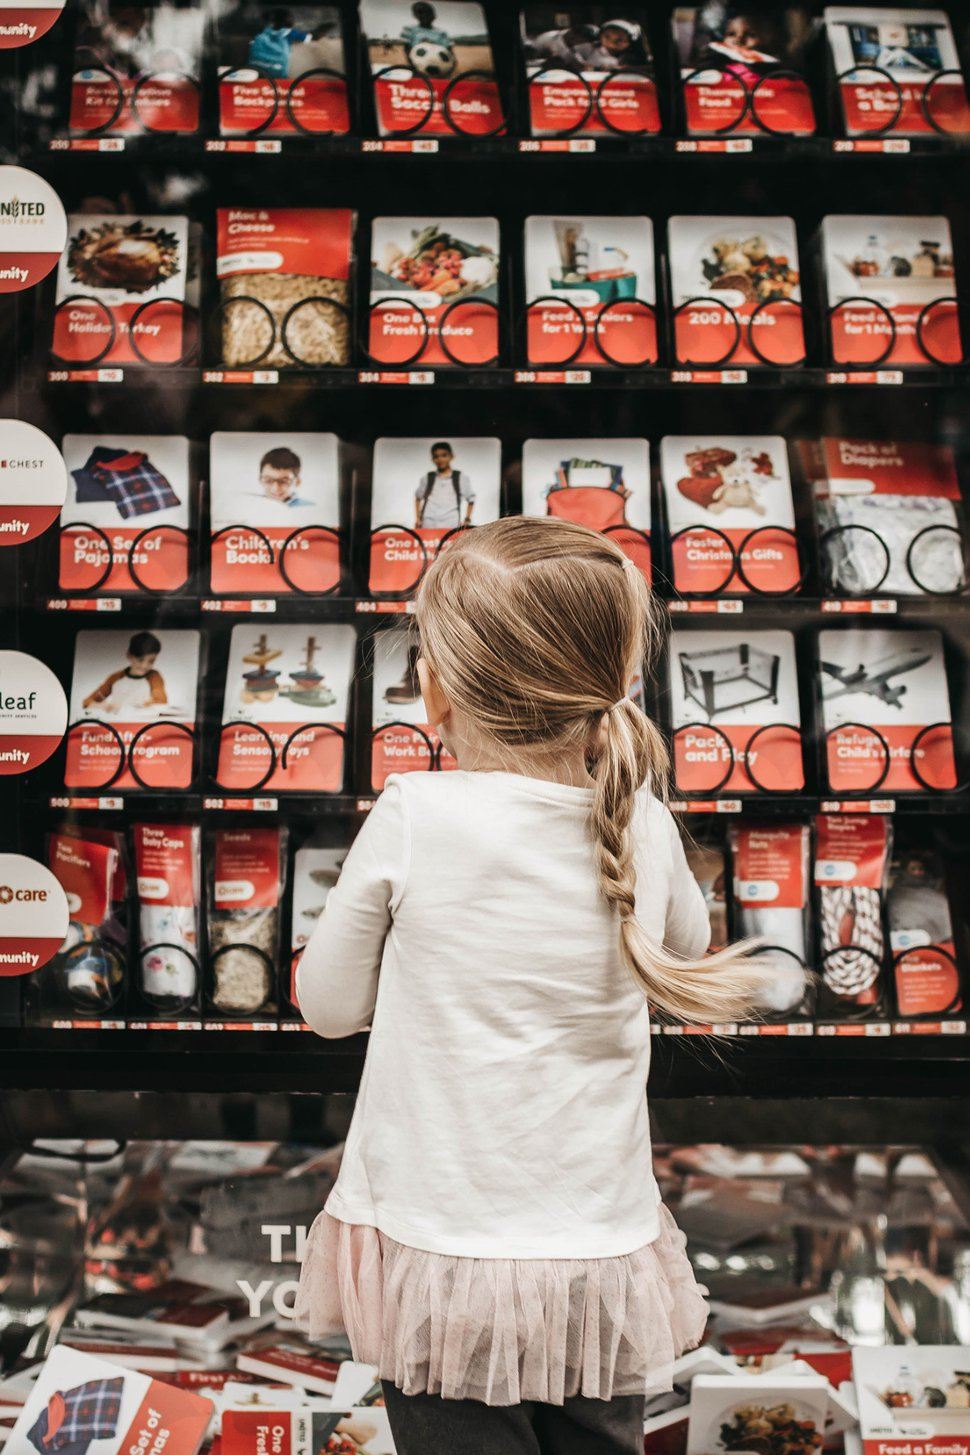 (Photo courtesy of The Church of Jesus Christ of Latter-day Saints) A girl looks at the many options available for purchase in a Giving Machine in Gilbert, Ariz. Gilbert is one of 10 locations this year where donations can be made during the Christmas season.